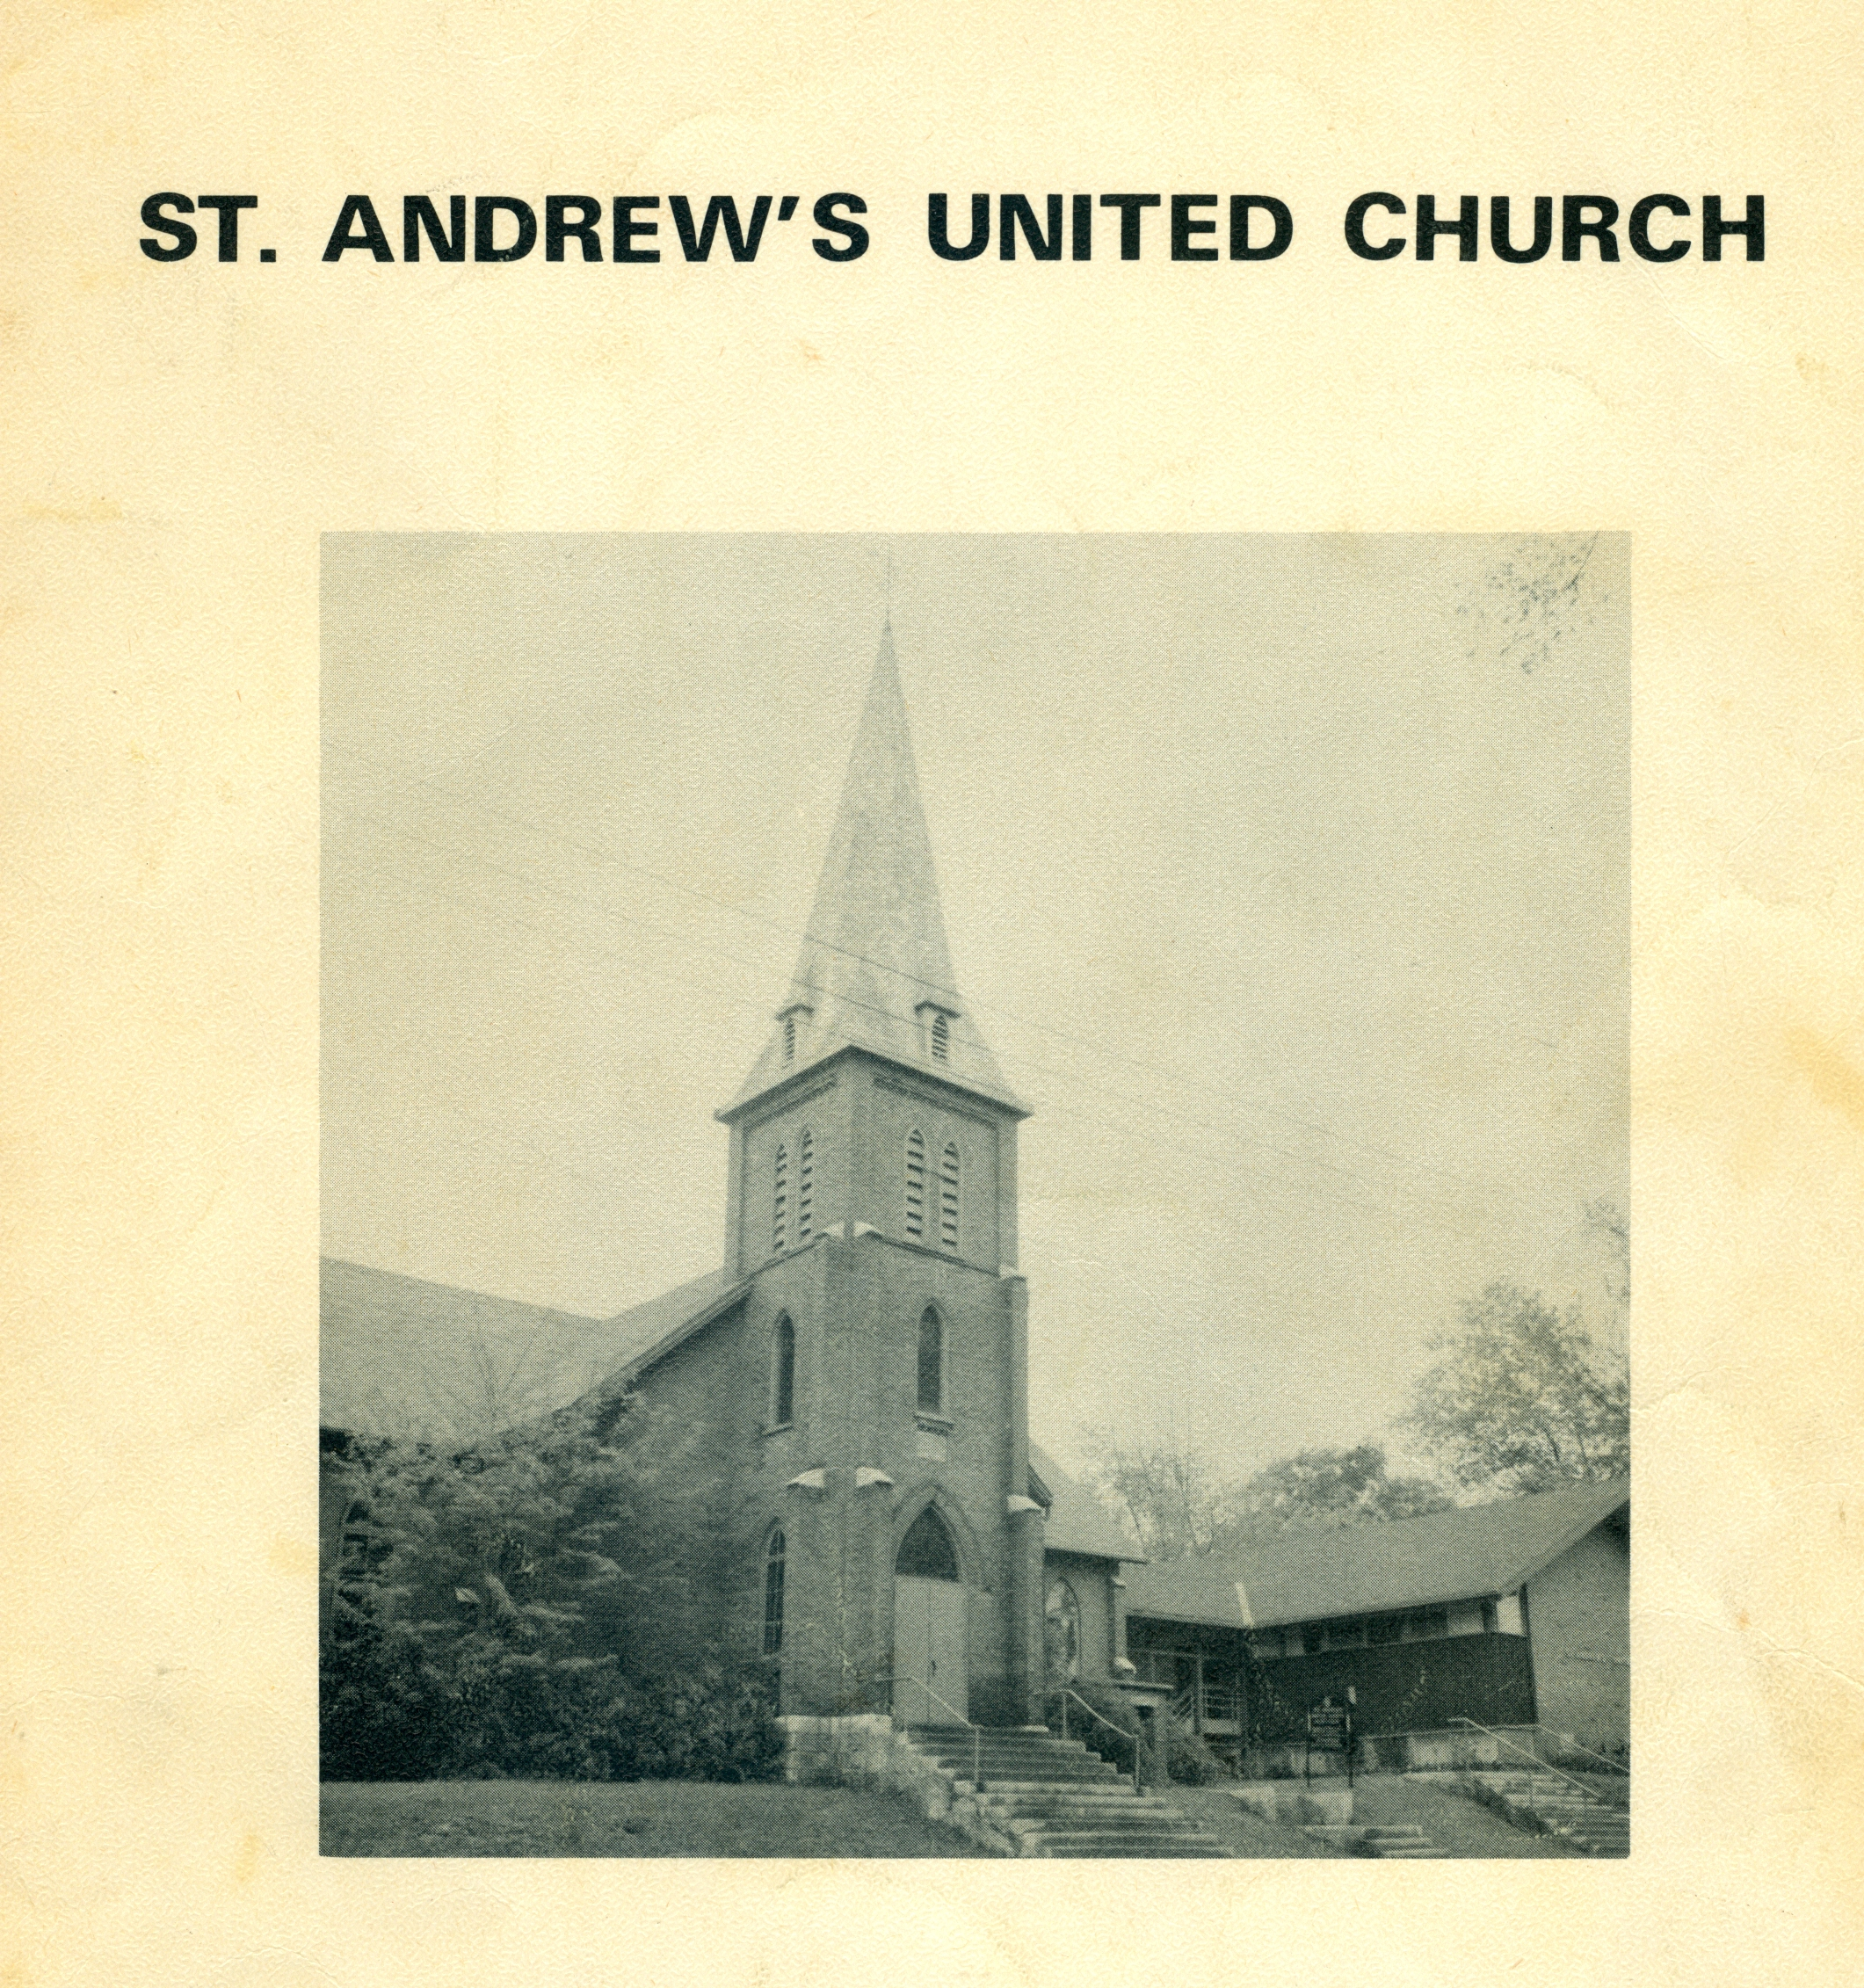 St. Andrew's United Church (5).jpg